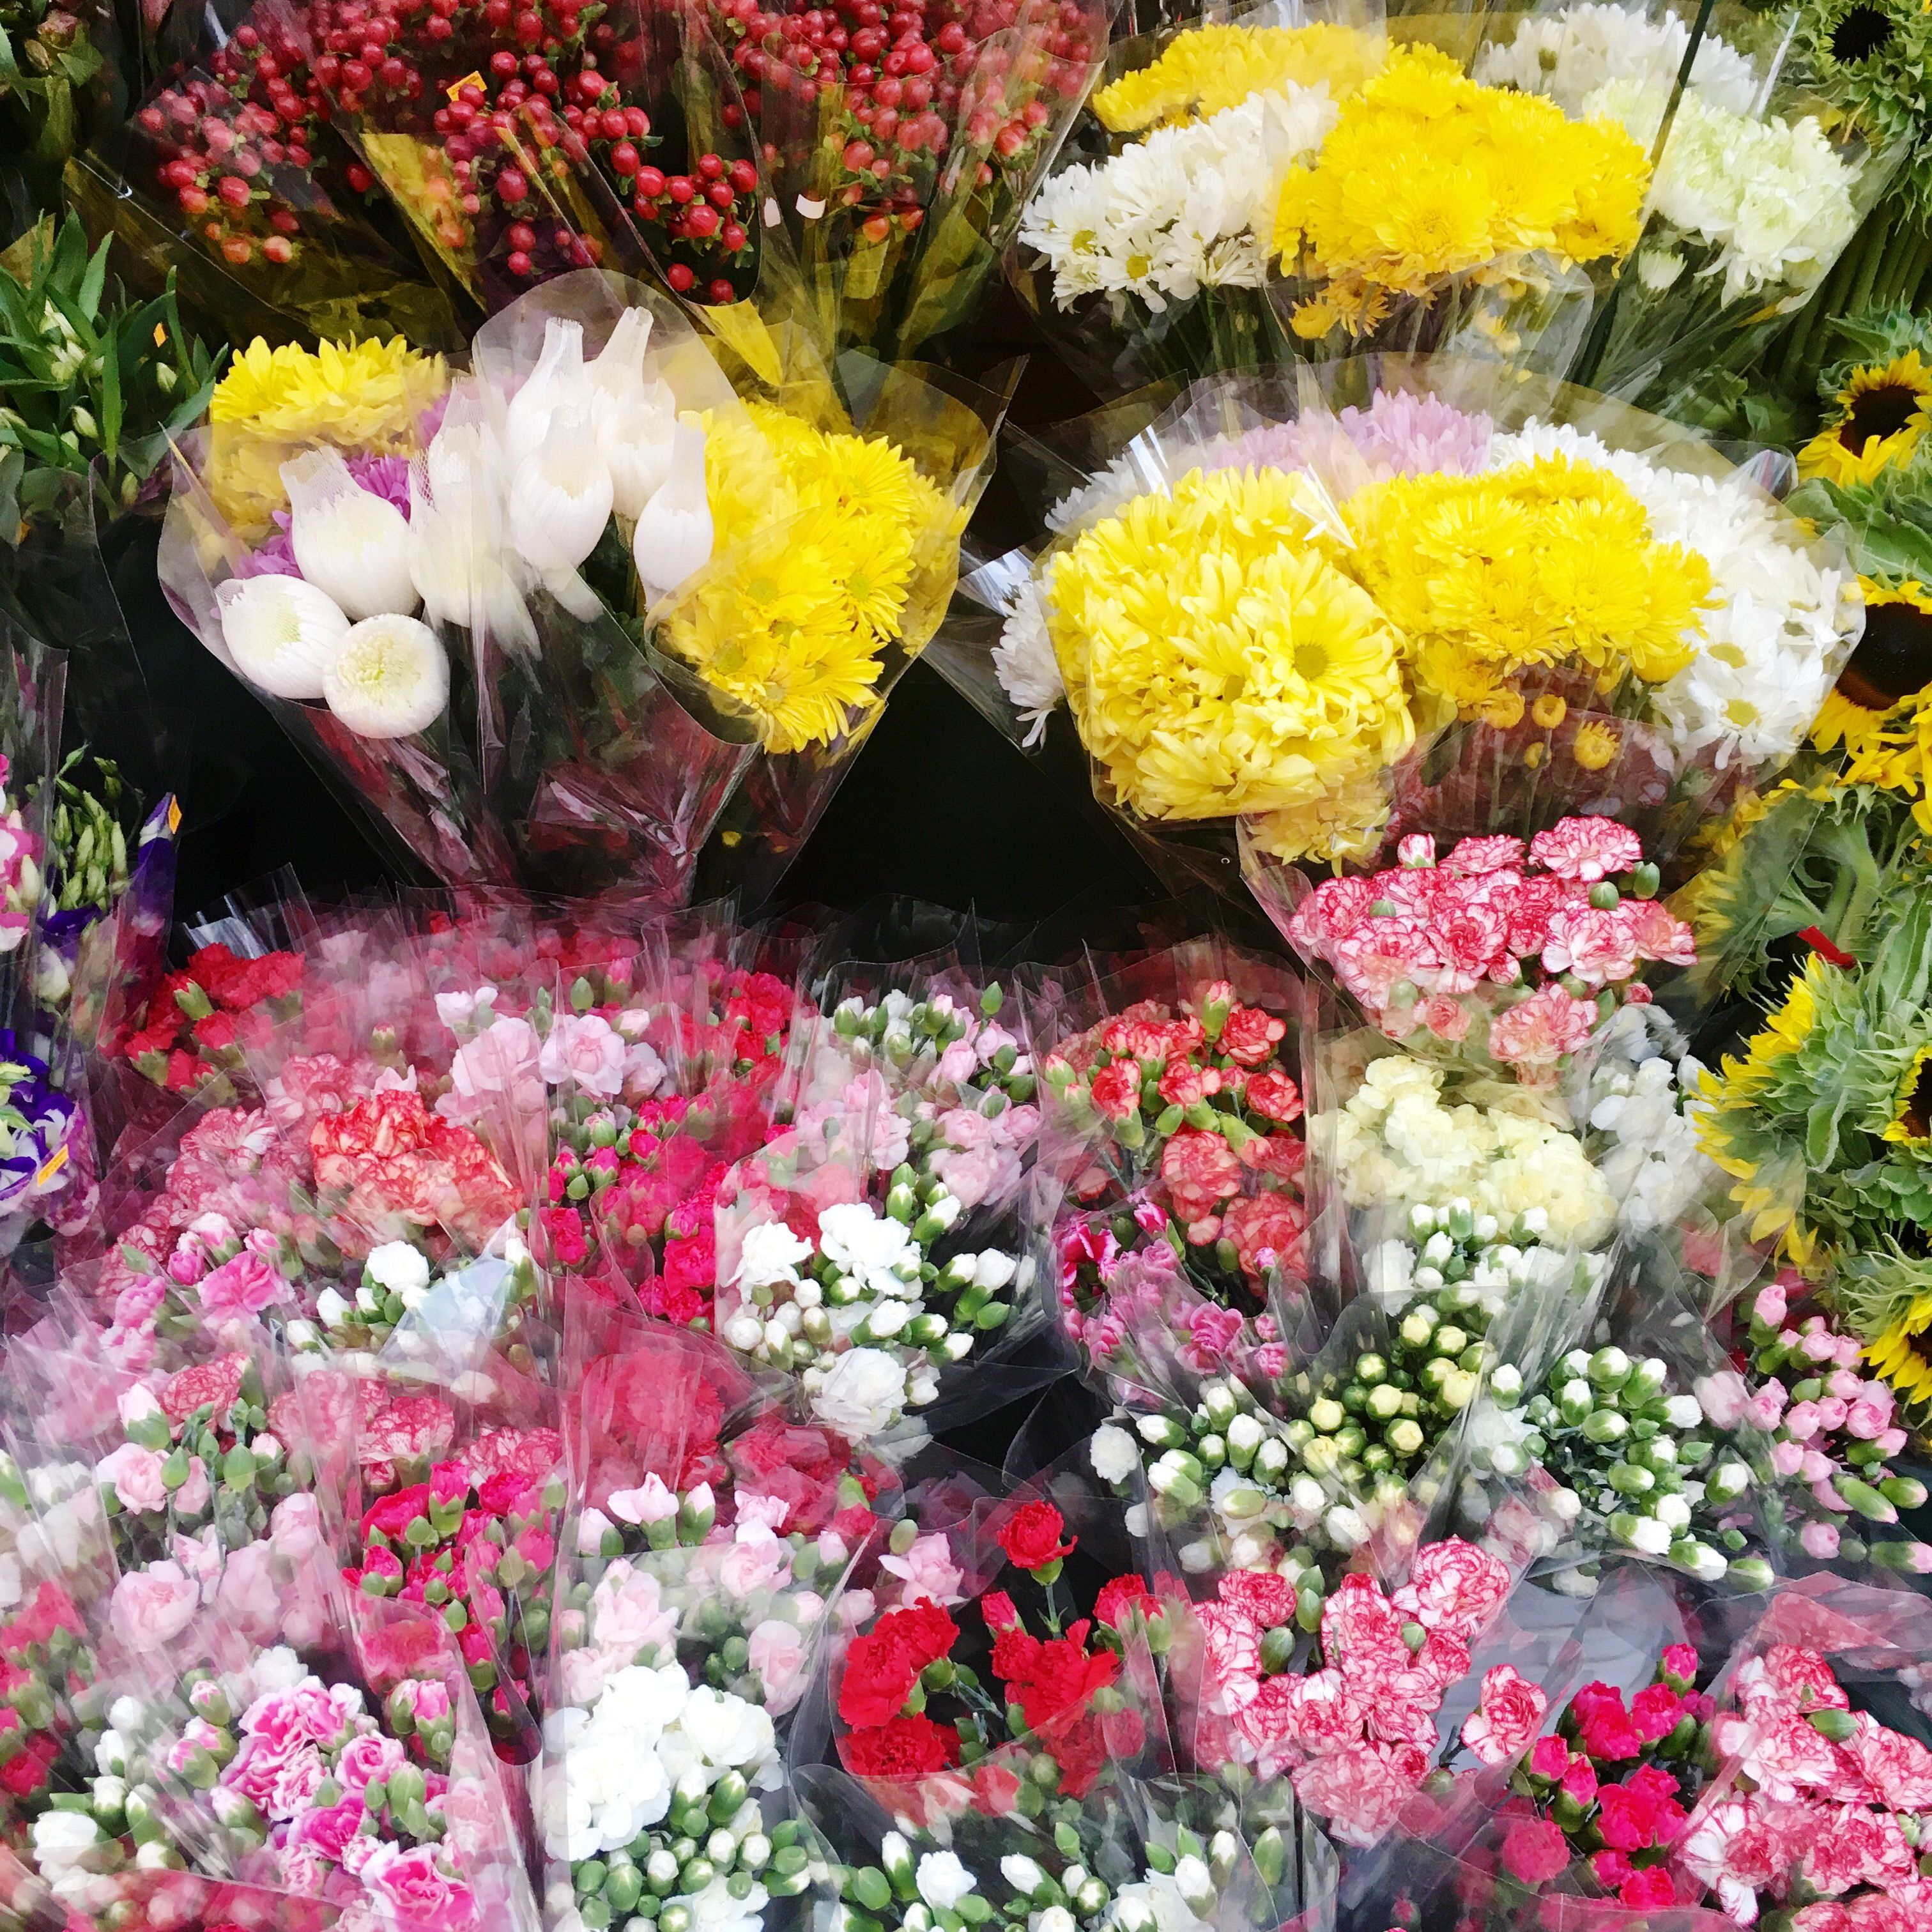 A quick stop to the flower market for some fresh blooms.